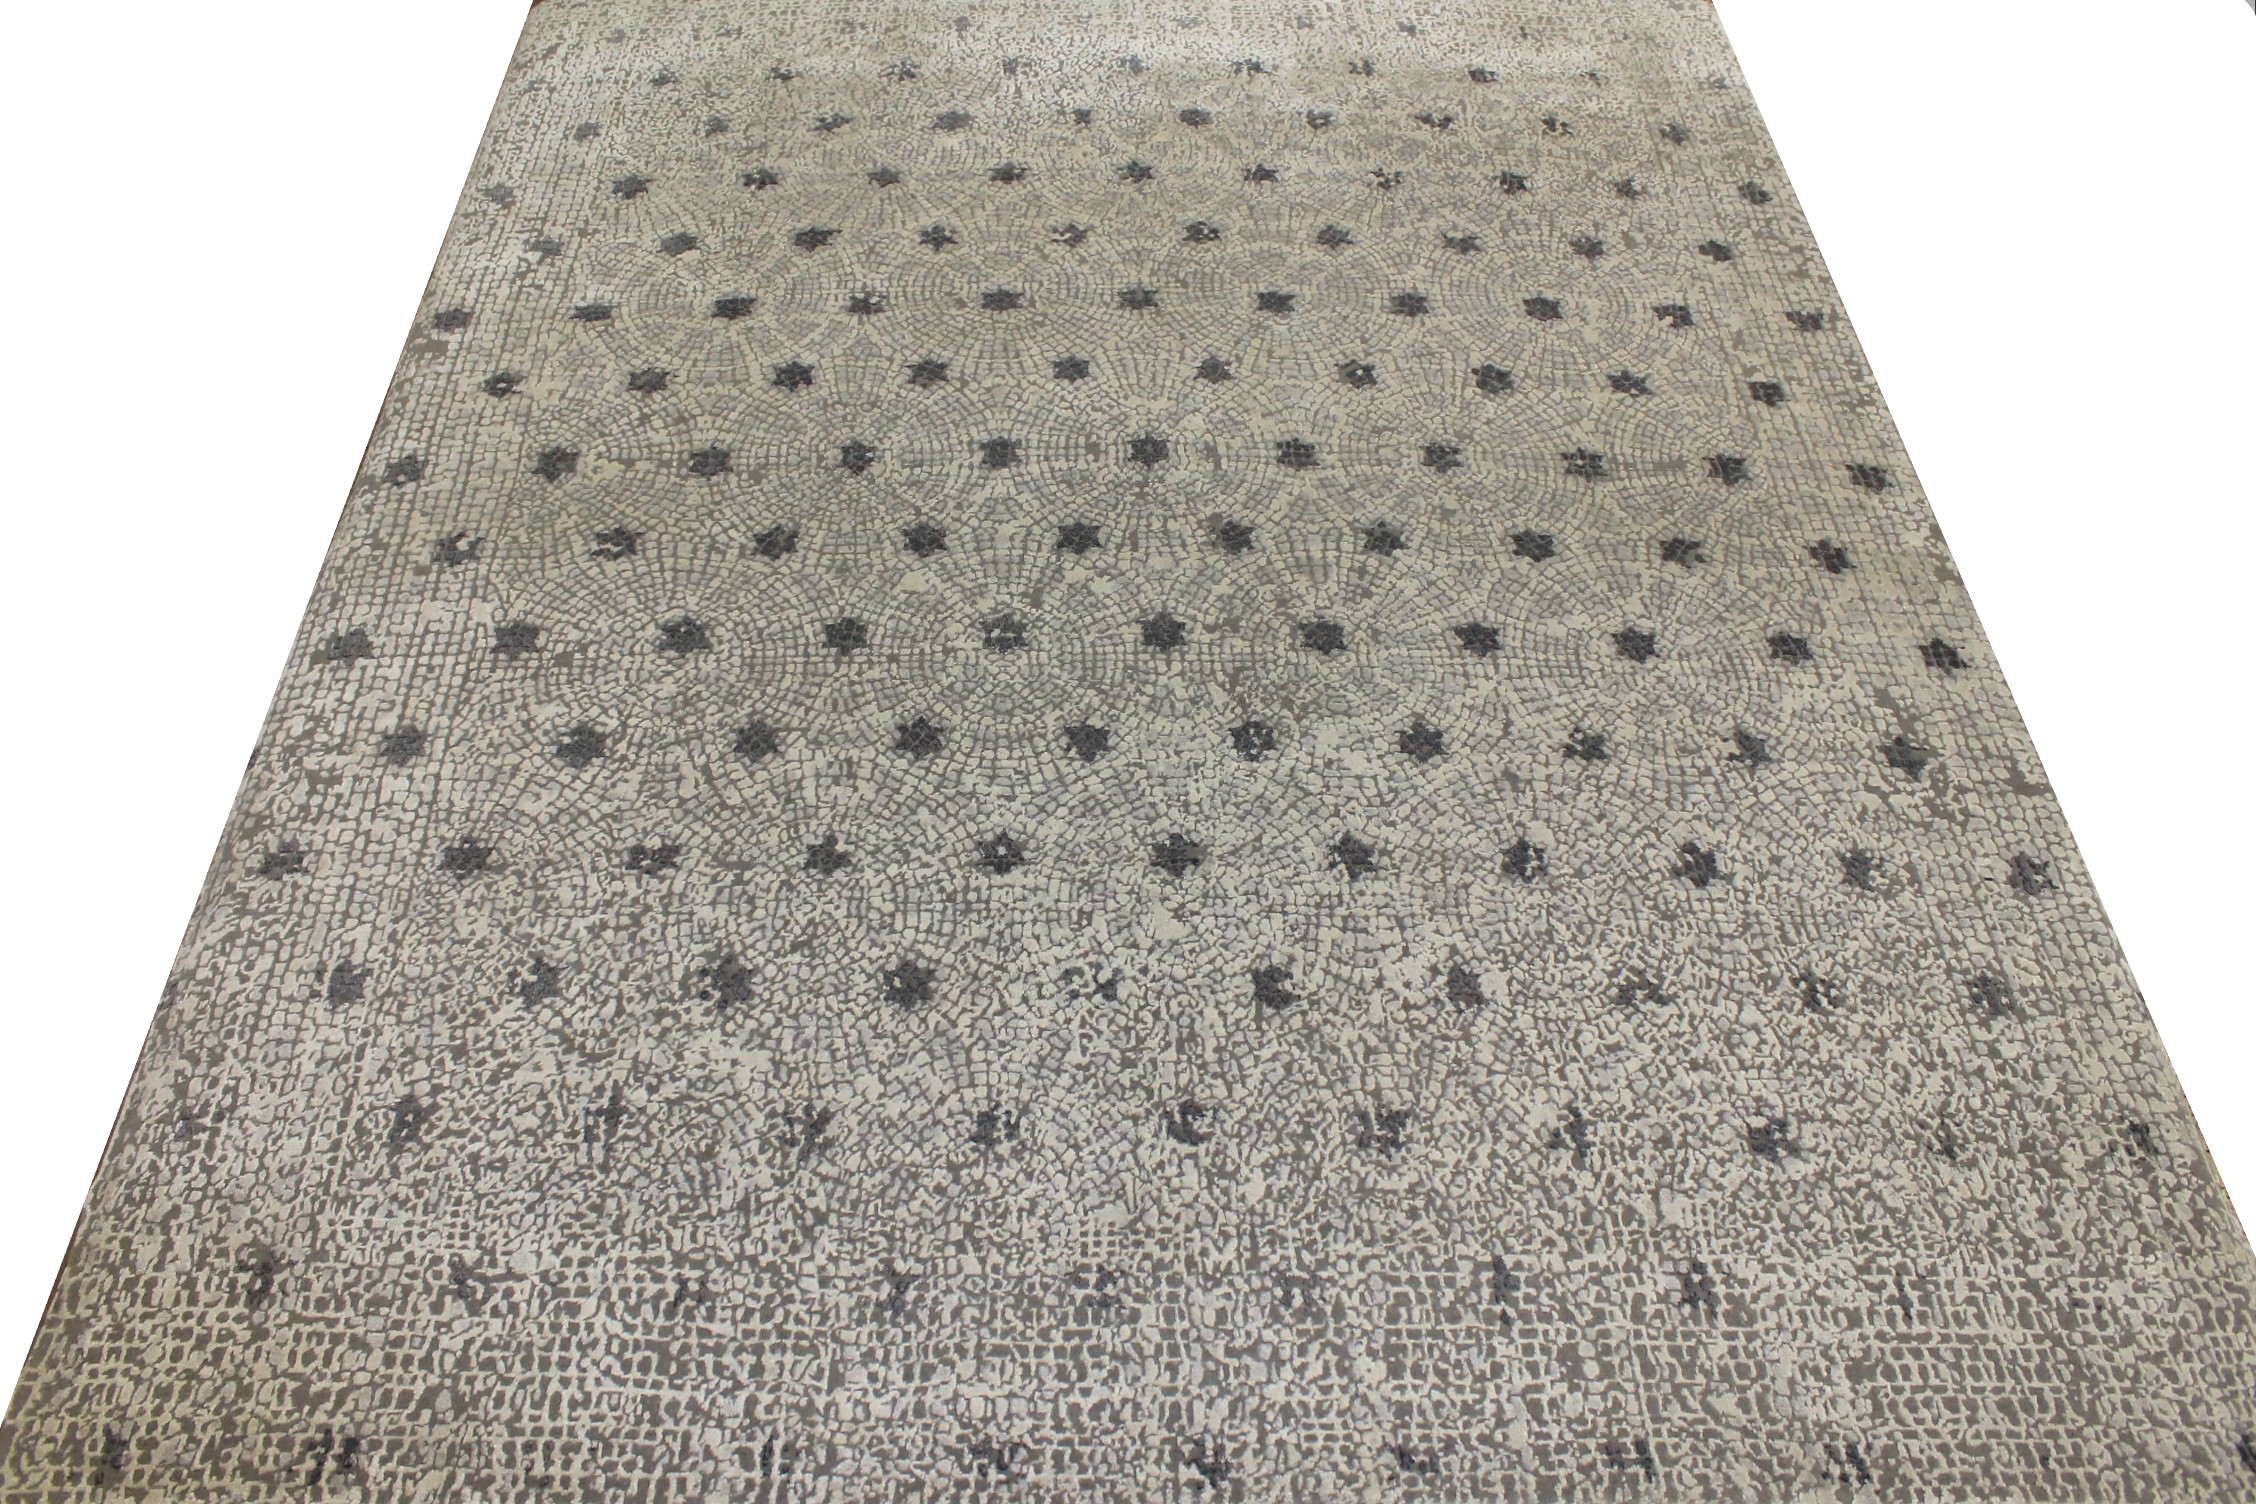 8x10 Contemporary Hand Knotted Wool Area Rug - MR021889